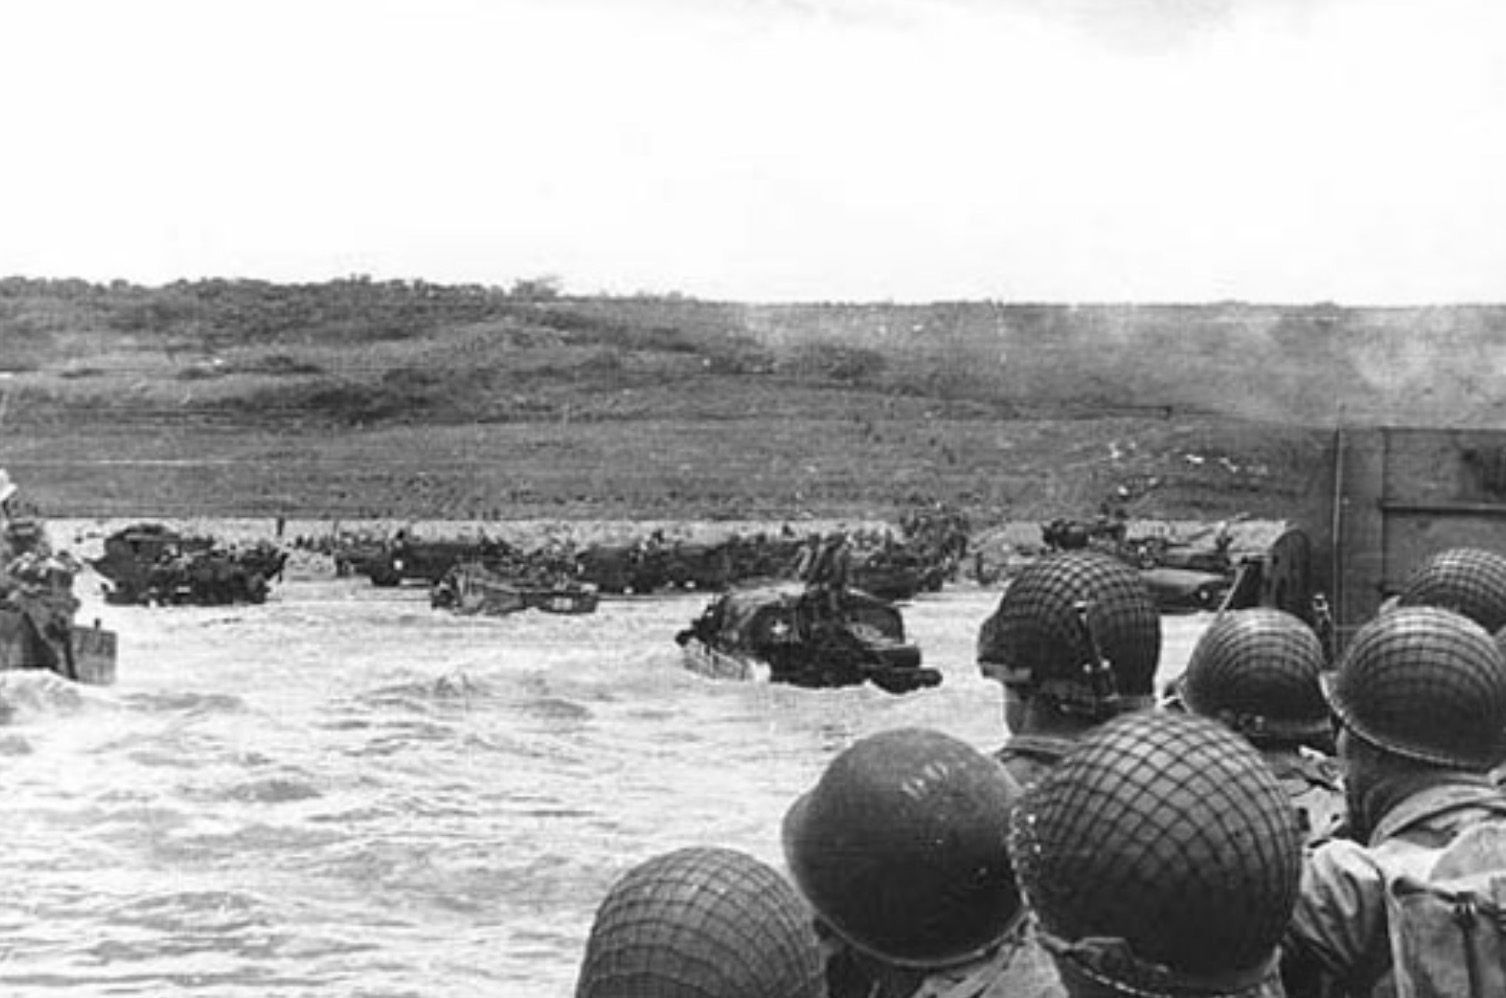 NPR reporter equates D-Day landings to anti-American and cowardly ANTIFA